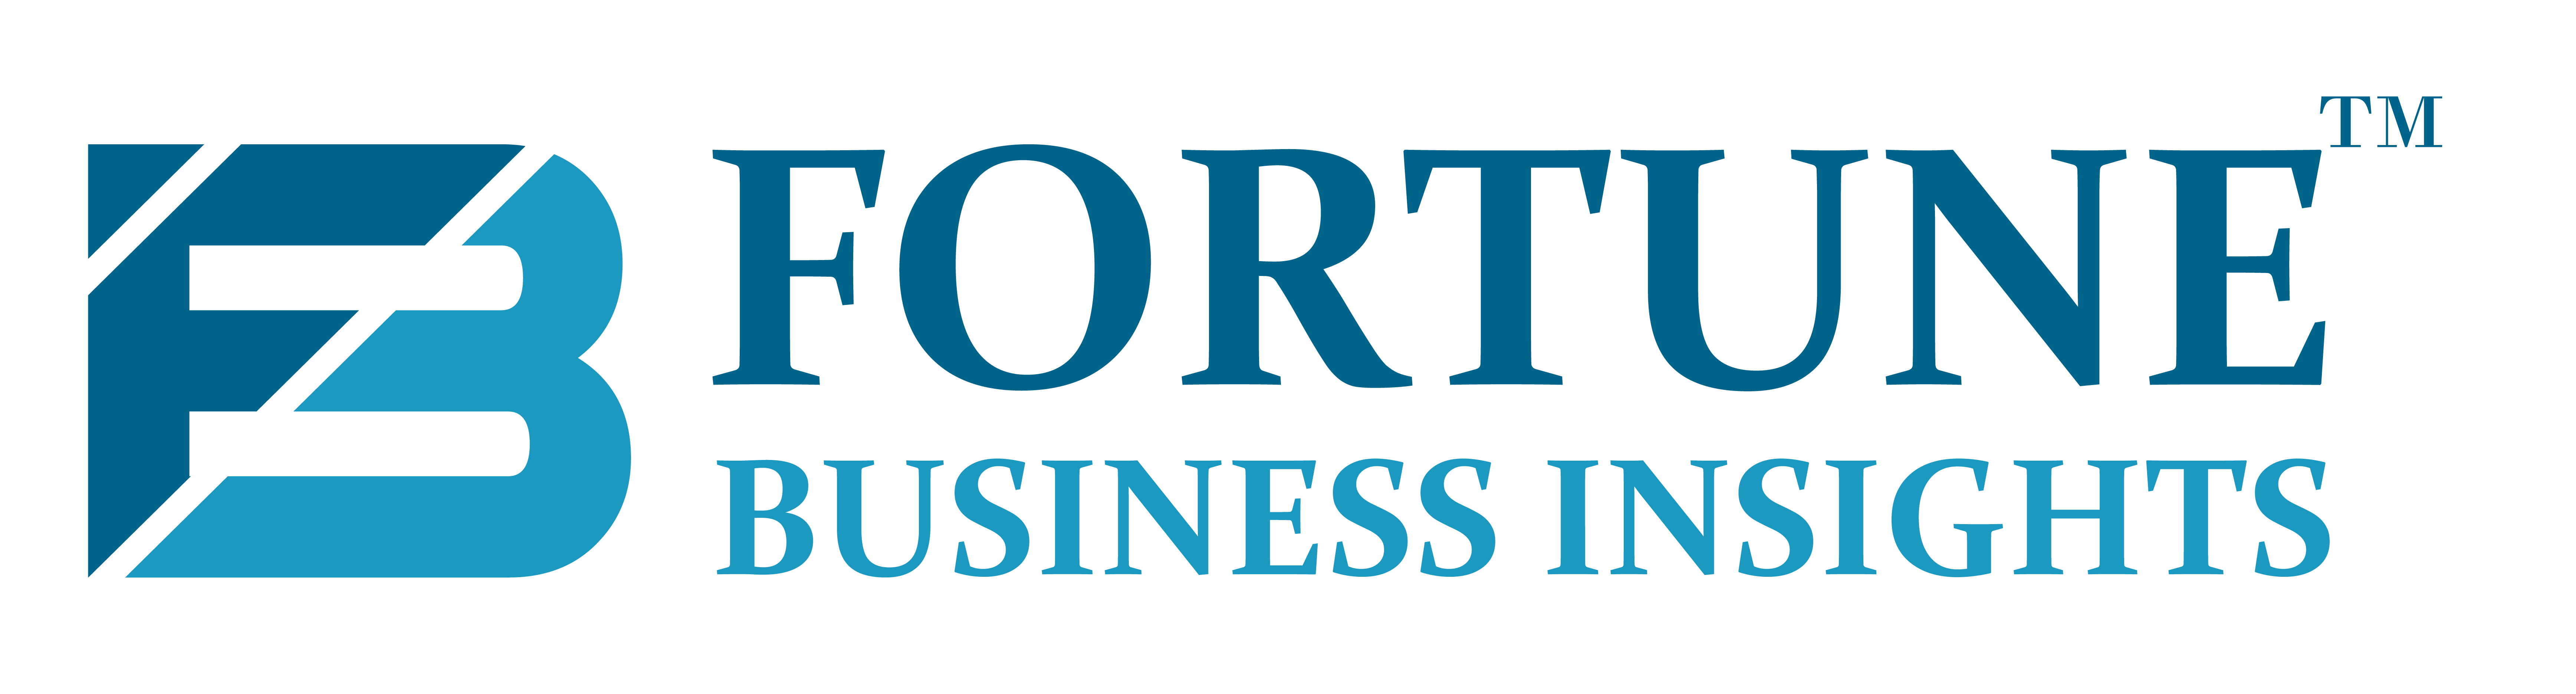 Bulletproof Vest Market to Reach USD 1,998.1 Million by 2027; Increasing Cross-Border Conflicts to Intensify Business, states Fortune Business Insights™